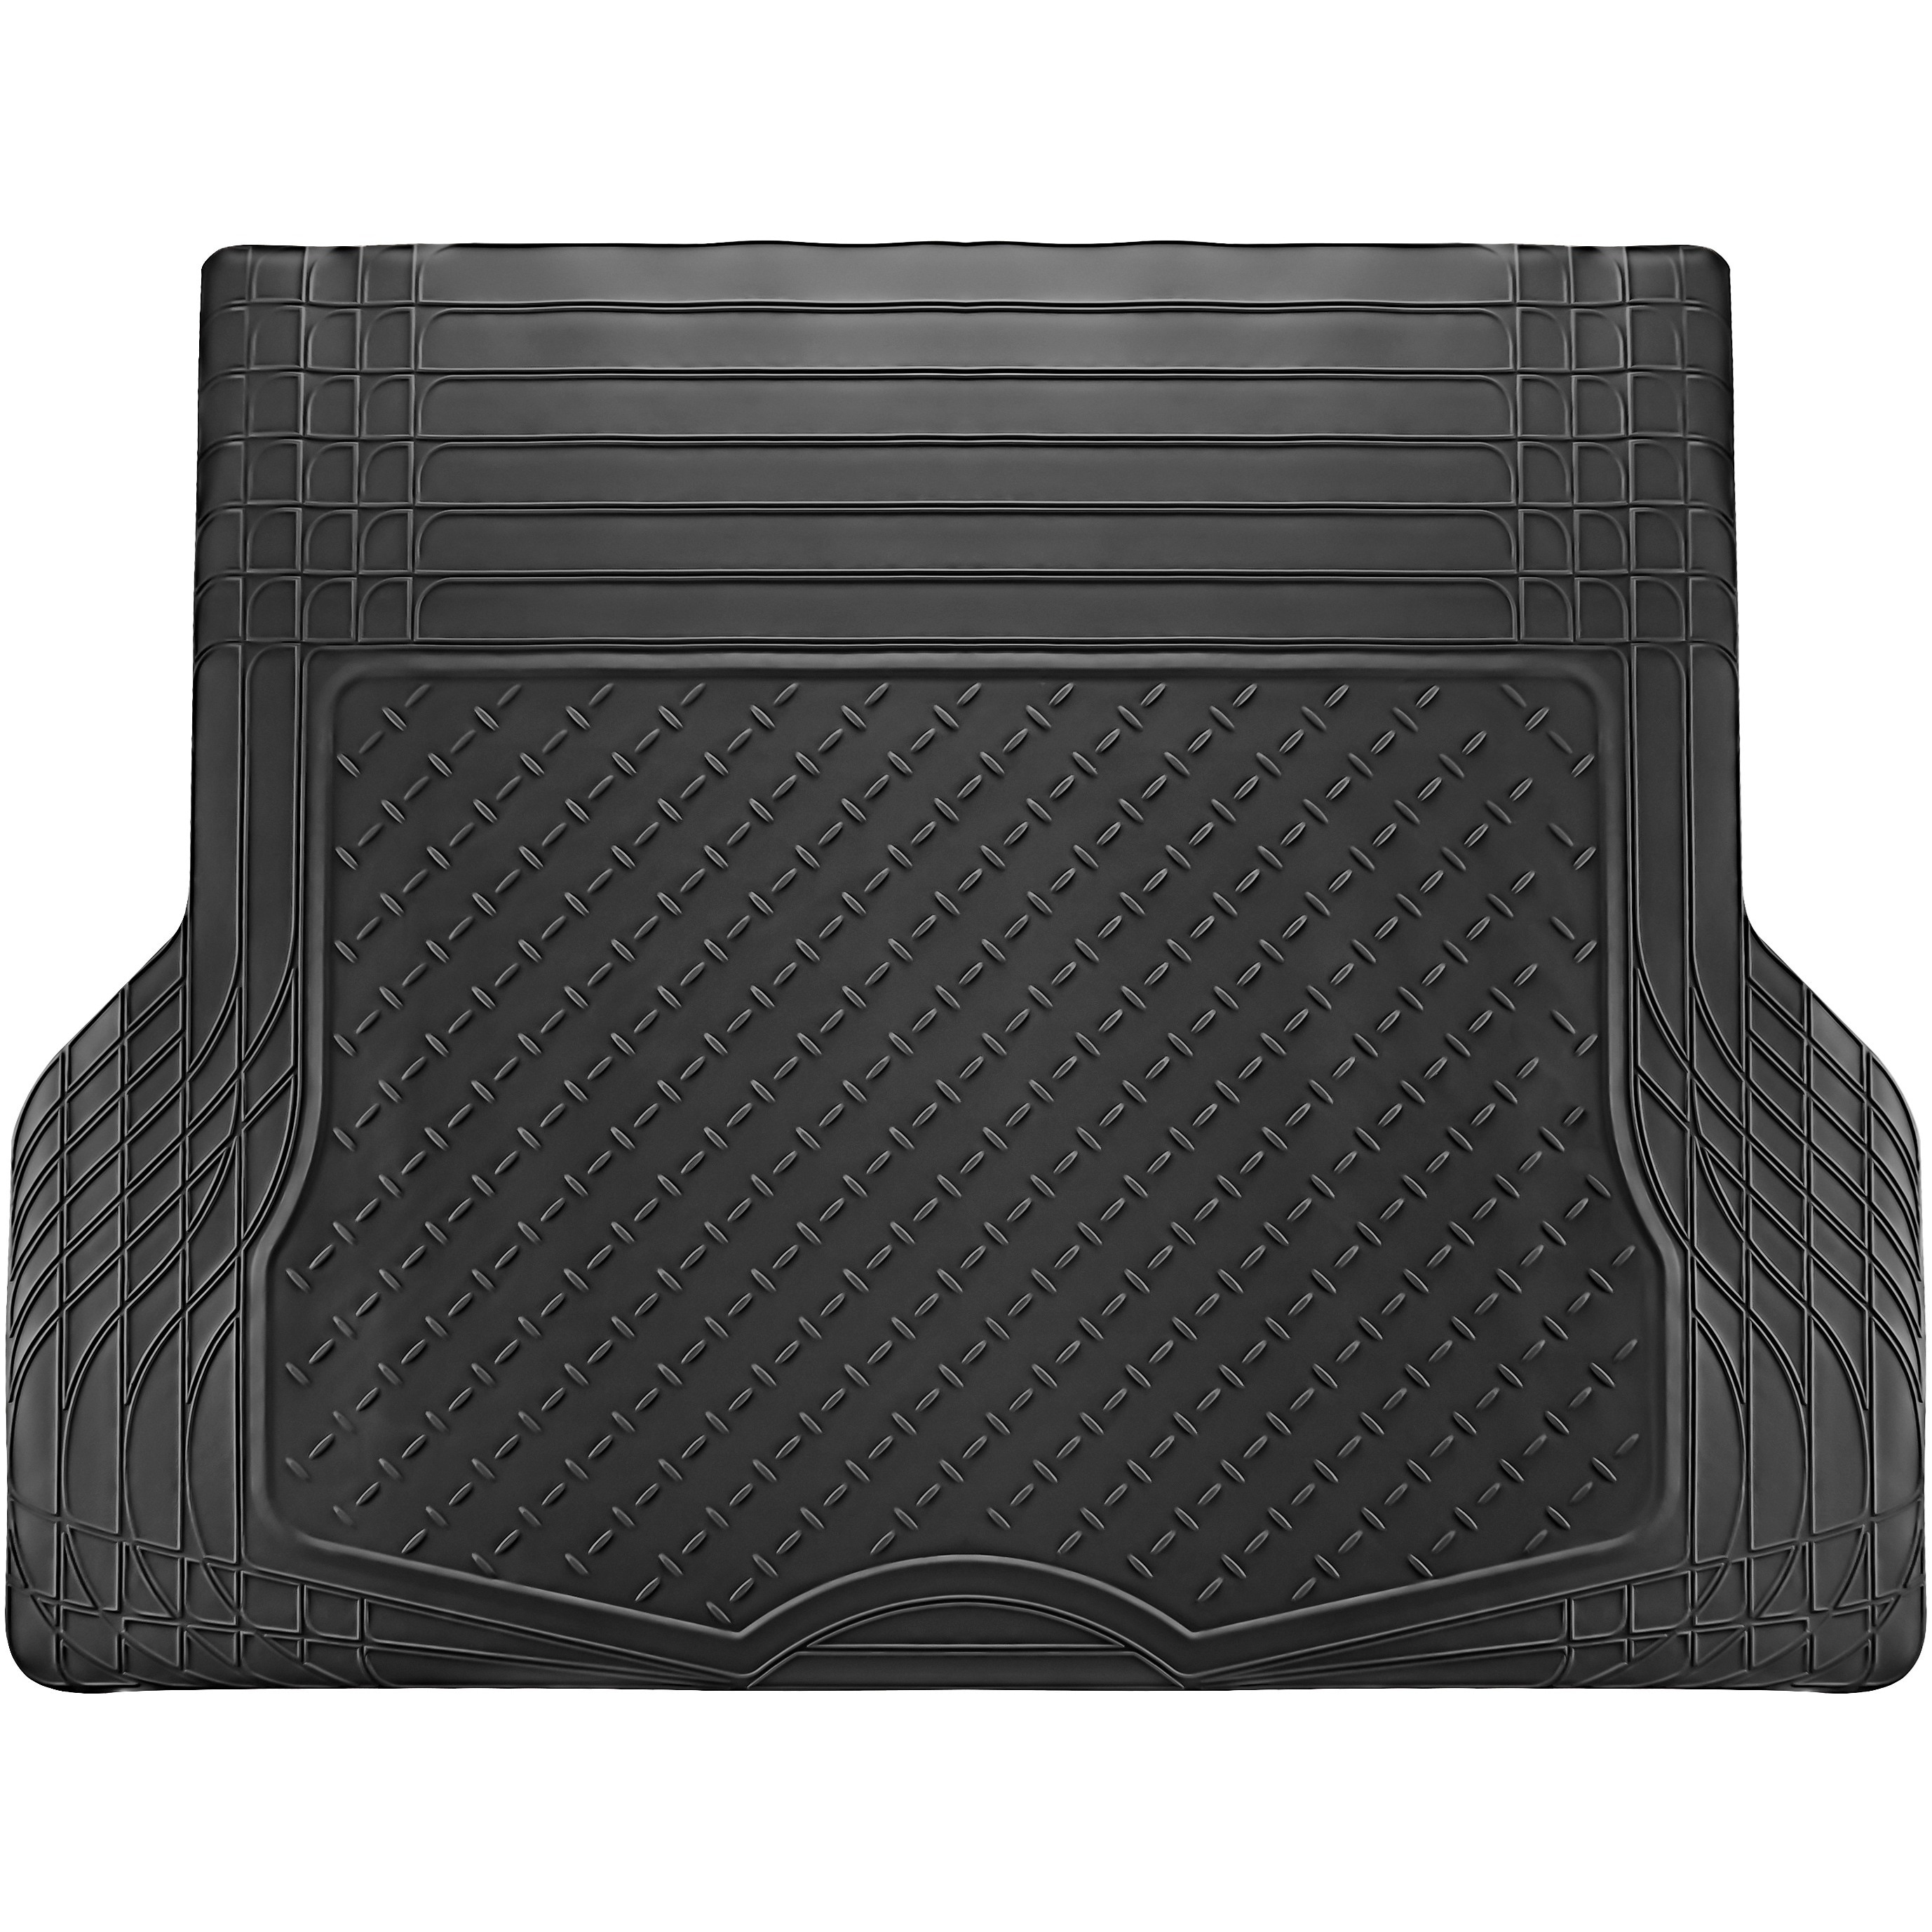 shop mat car rubber seat gray suv bestfh mats product rakuten van floor covers w